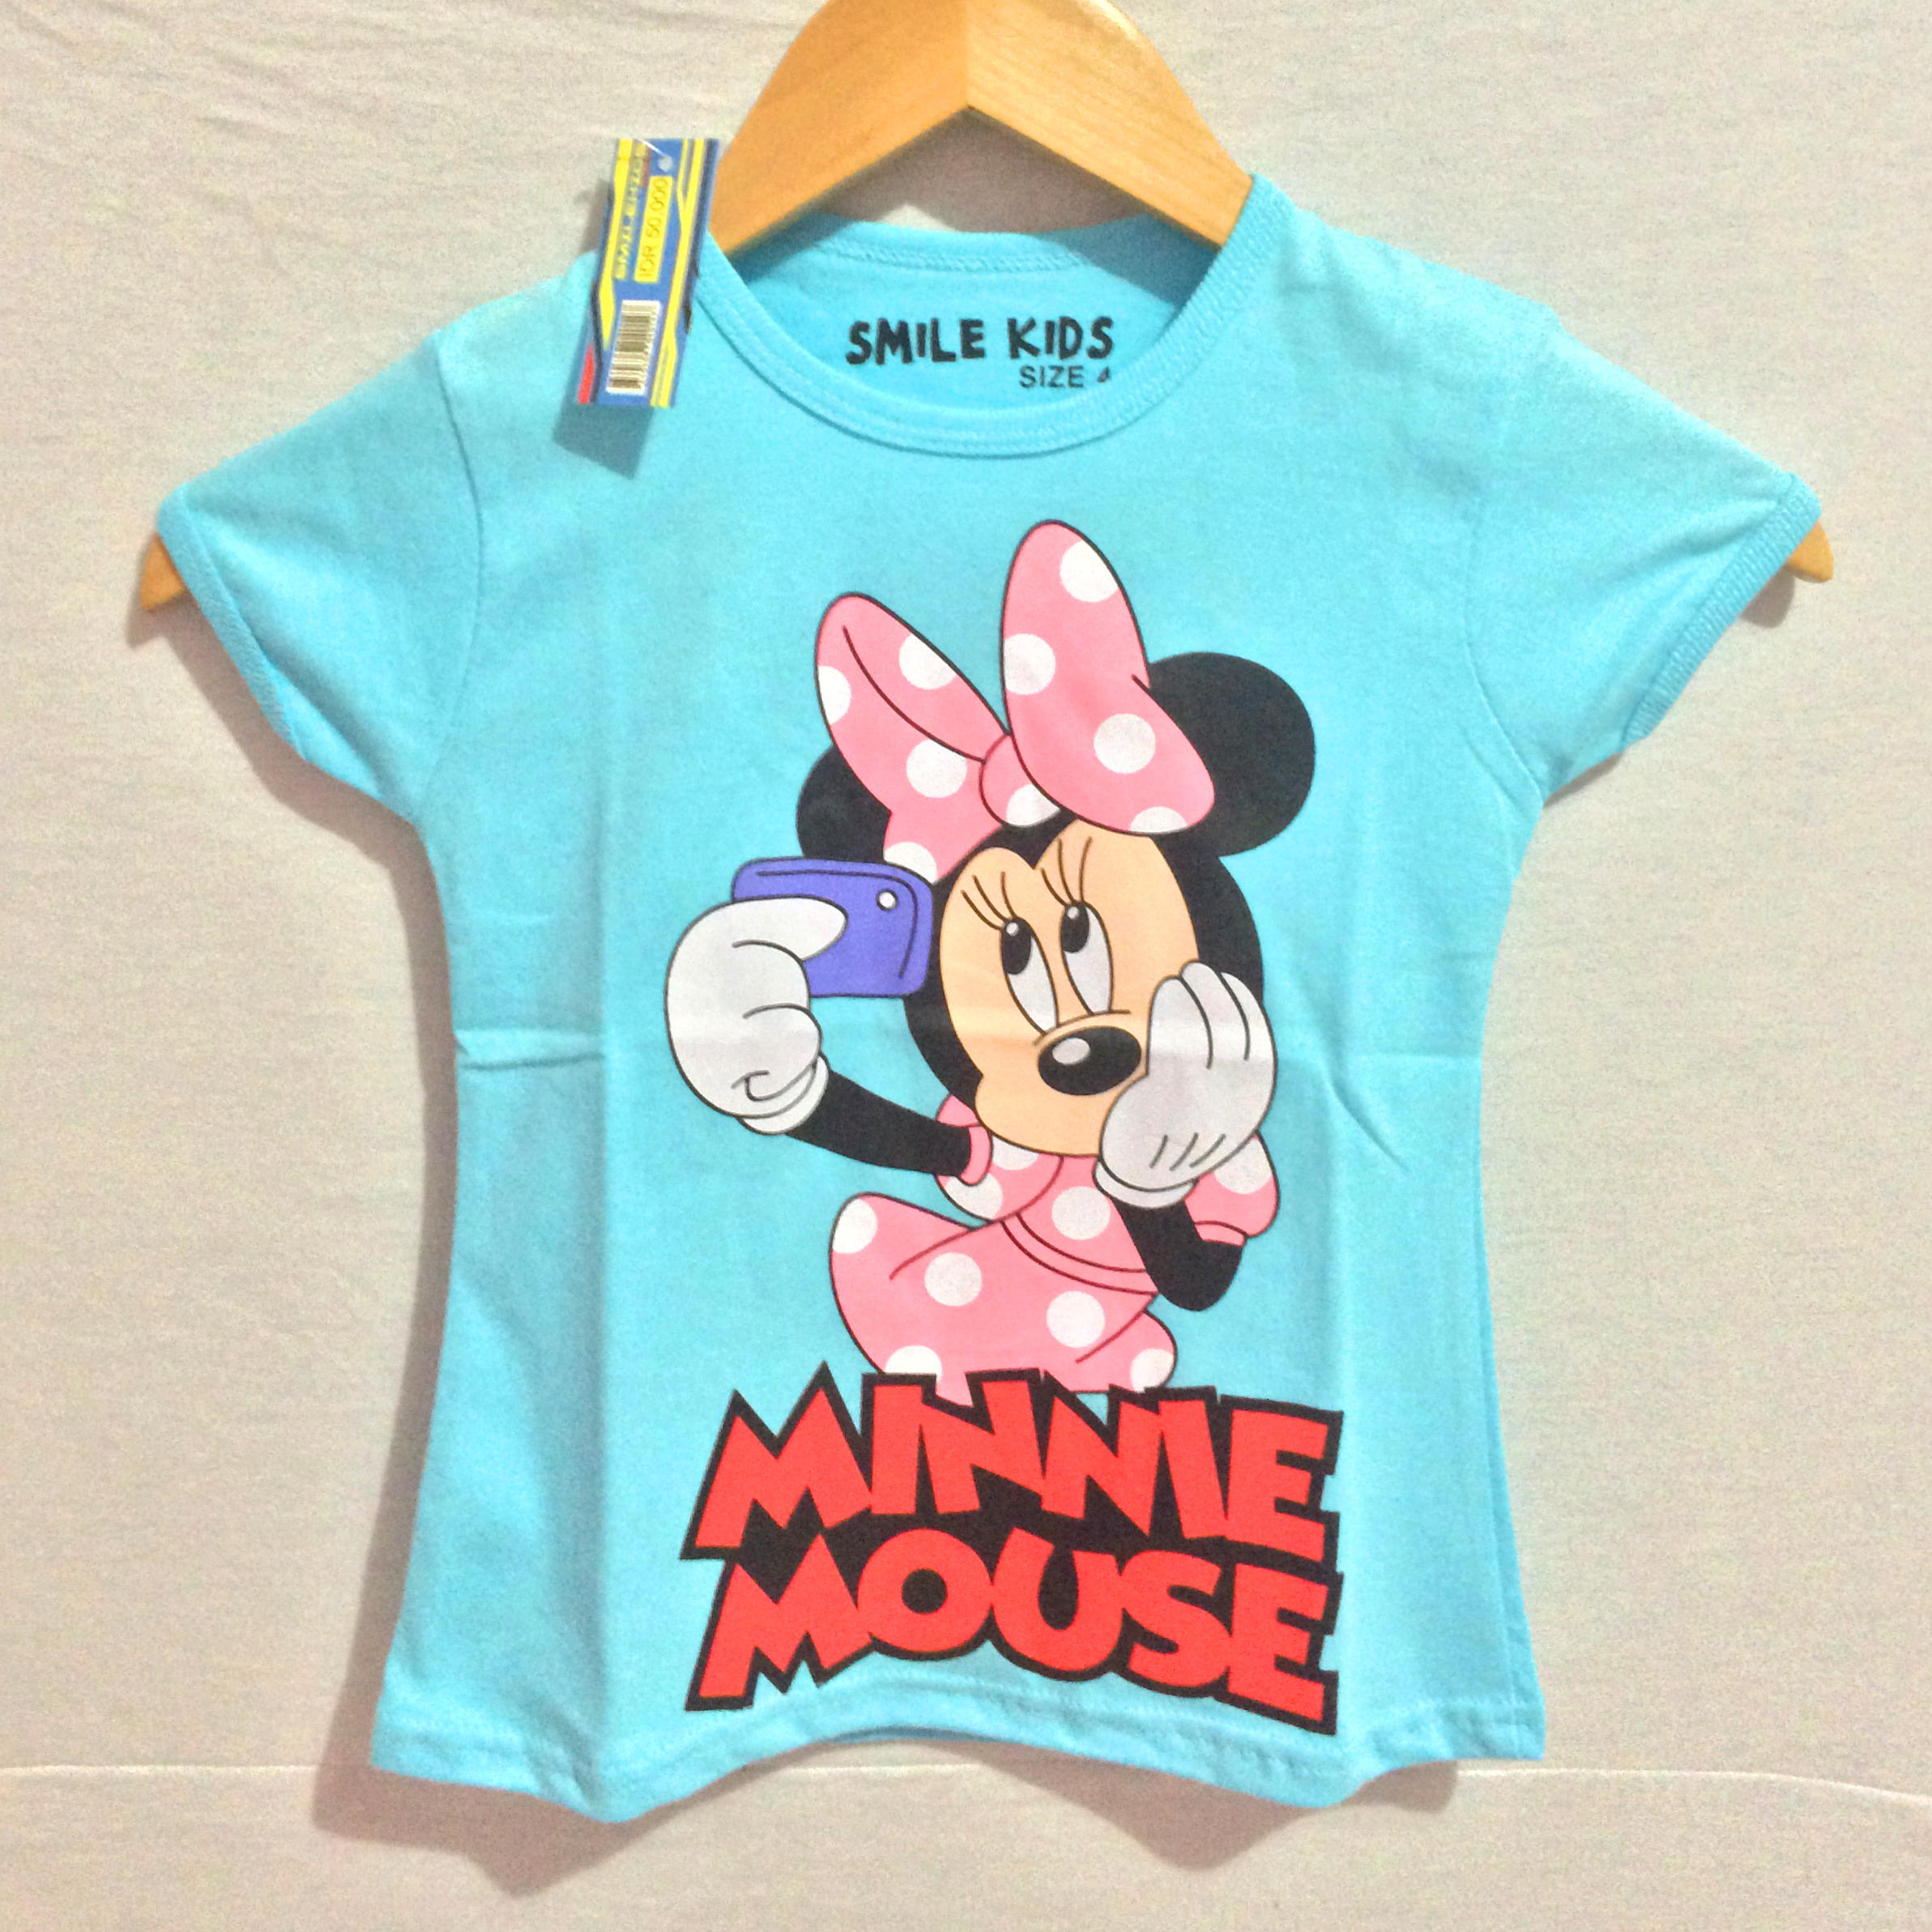 Orkids Kaos Anak Plagio Twotone Navy Daftar Harga Terupdate Dx3 Macbear Kids Baju Rainbow California Size 6 Ditul Brown Source Minnie Mouse Selfie 1